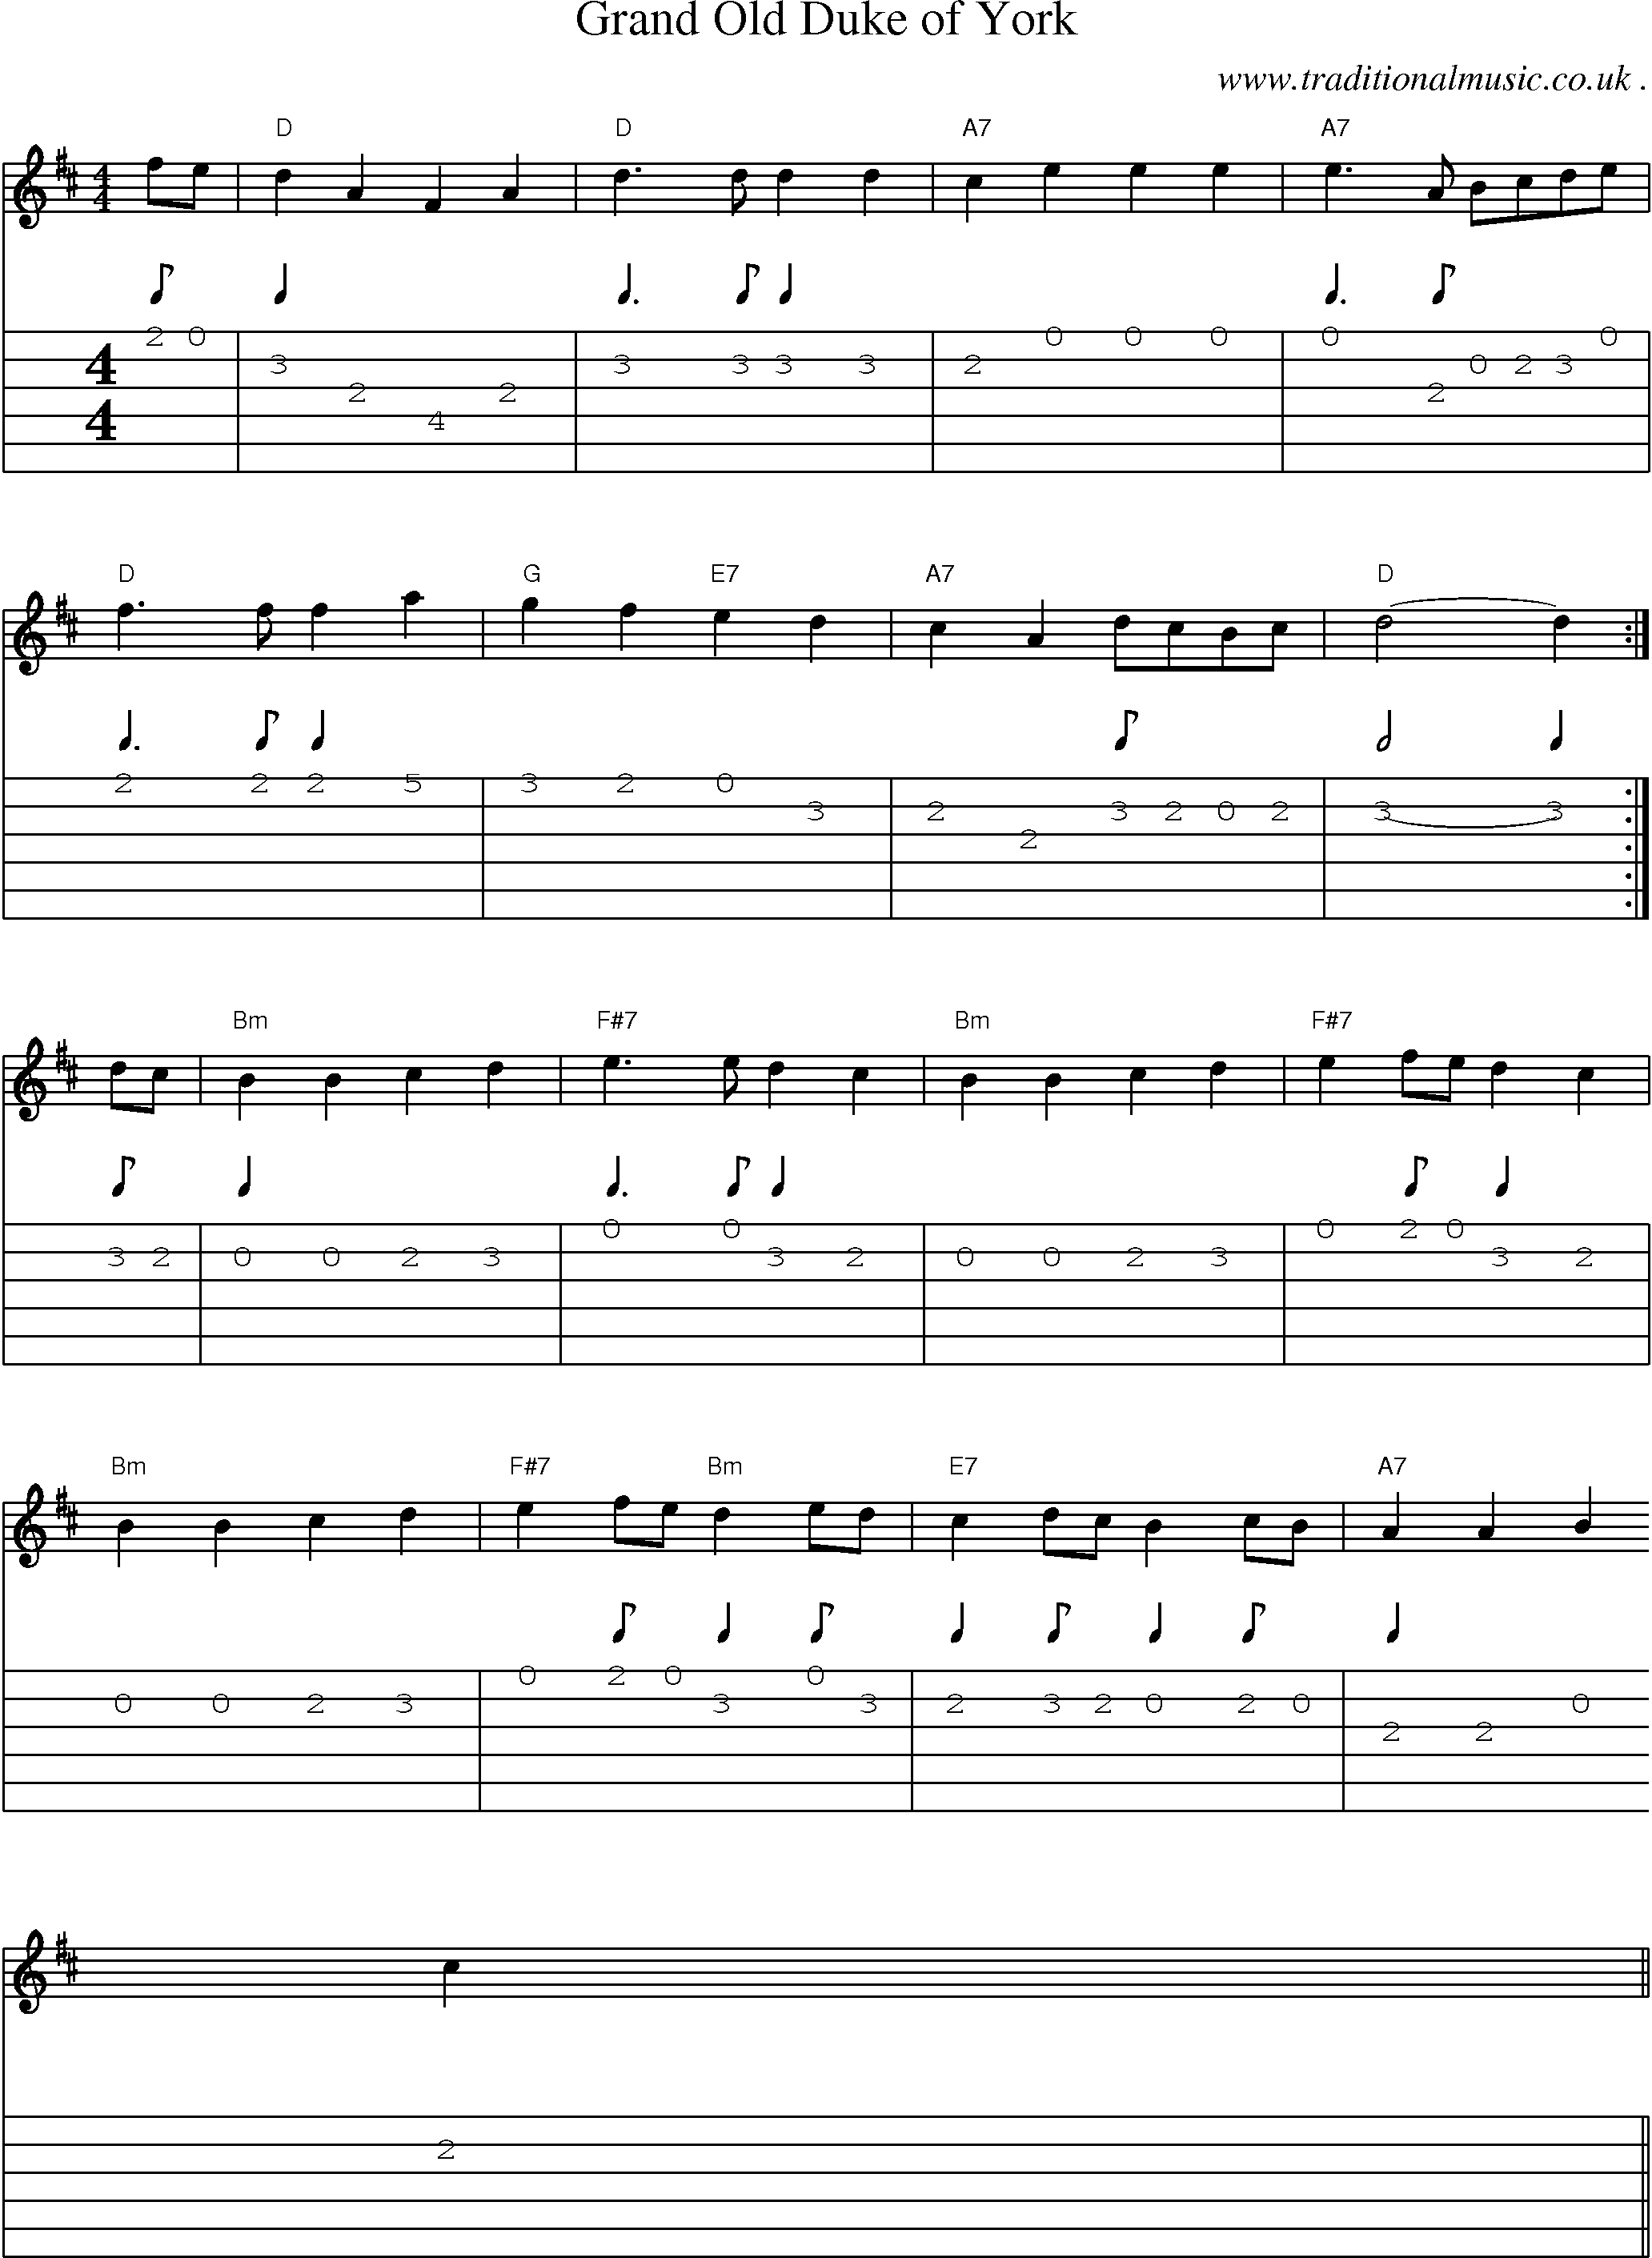 Sheet Music And Guitar Tabs For Grand Old Duke Of York